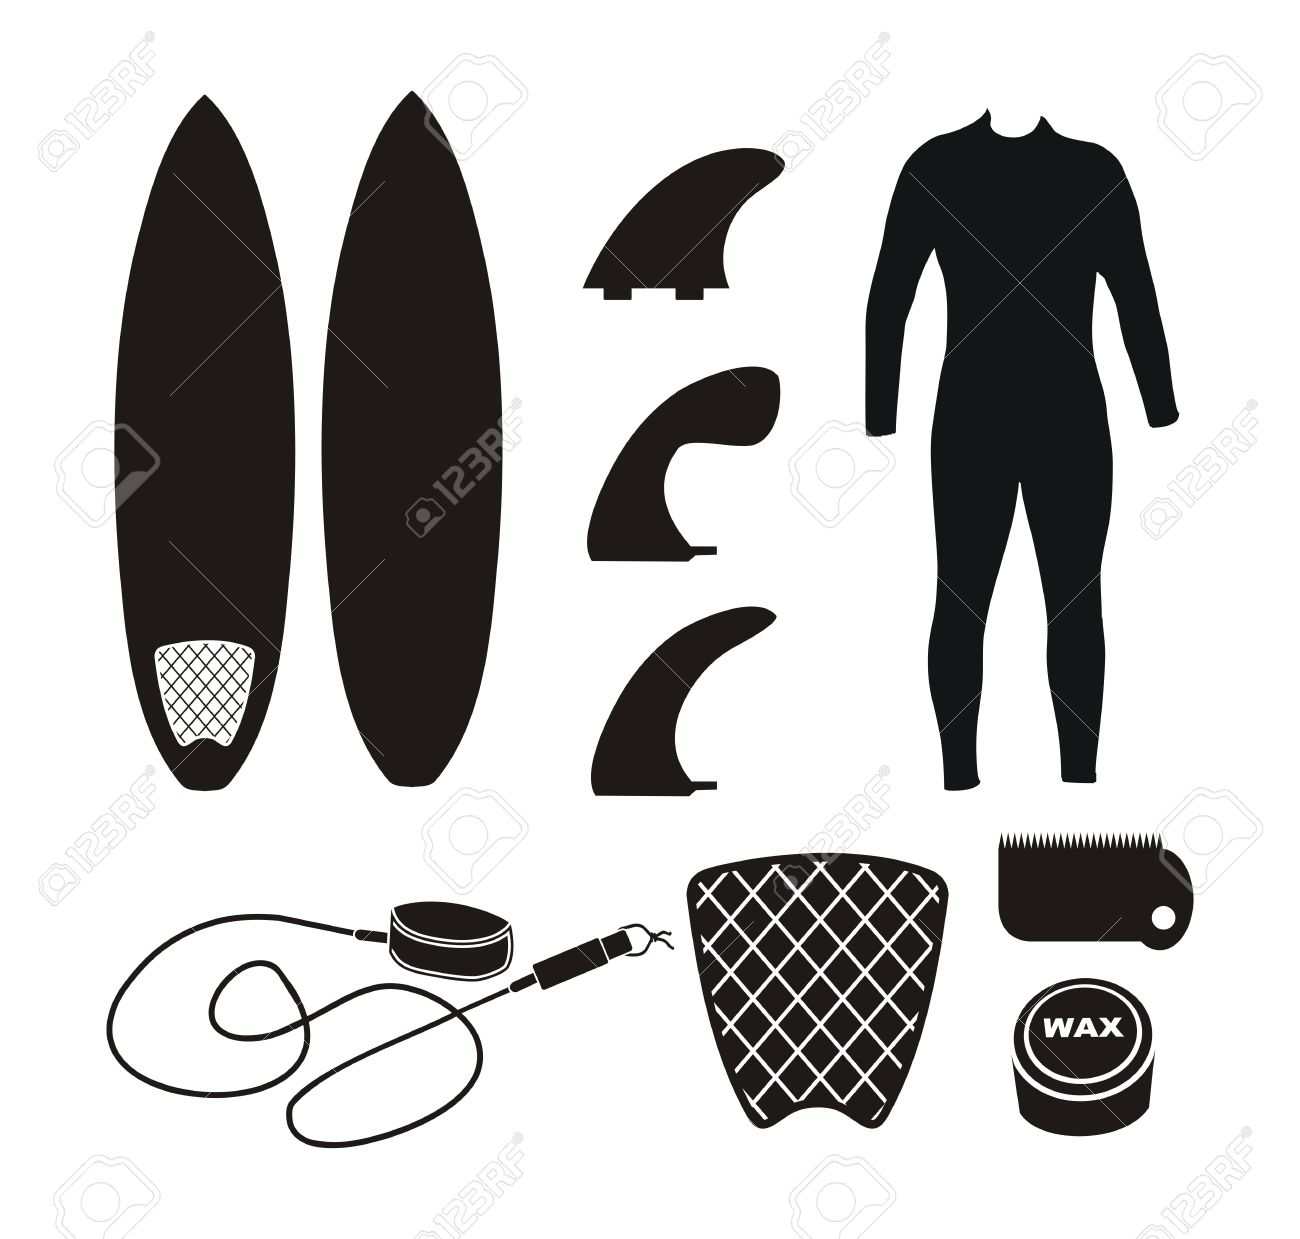 Surfboard clipart silhouette clip library download Surfboard Equipment - Silhouette Royalty Free Cliparts, Vectors ... clip library download